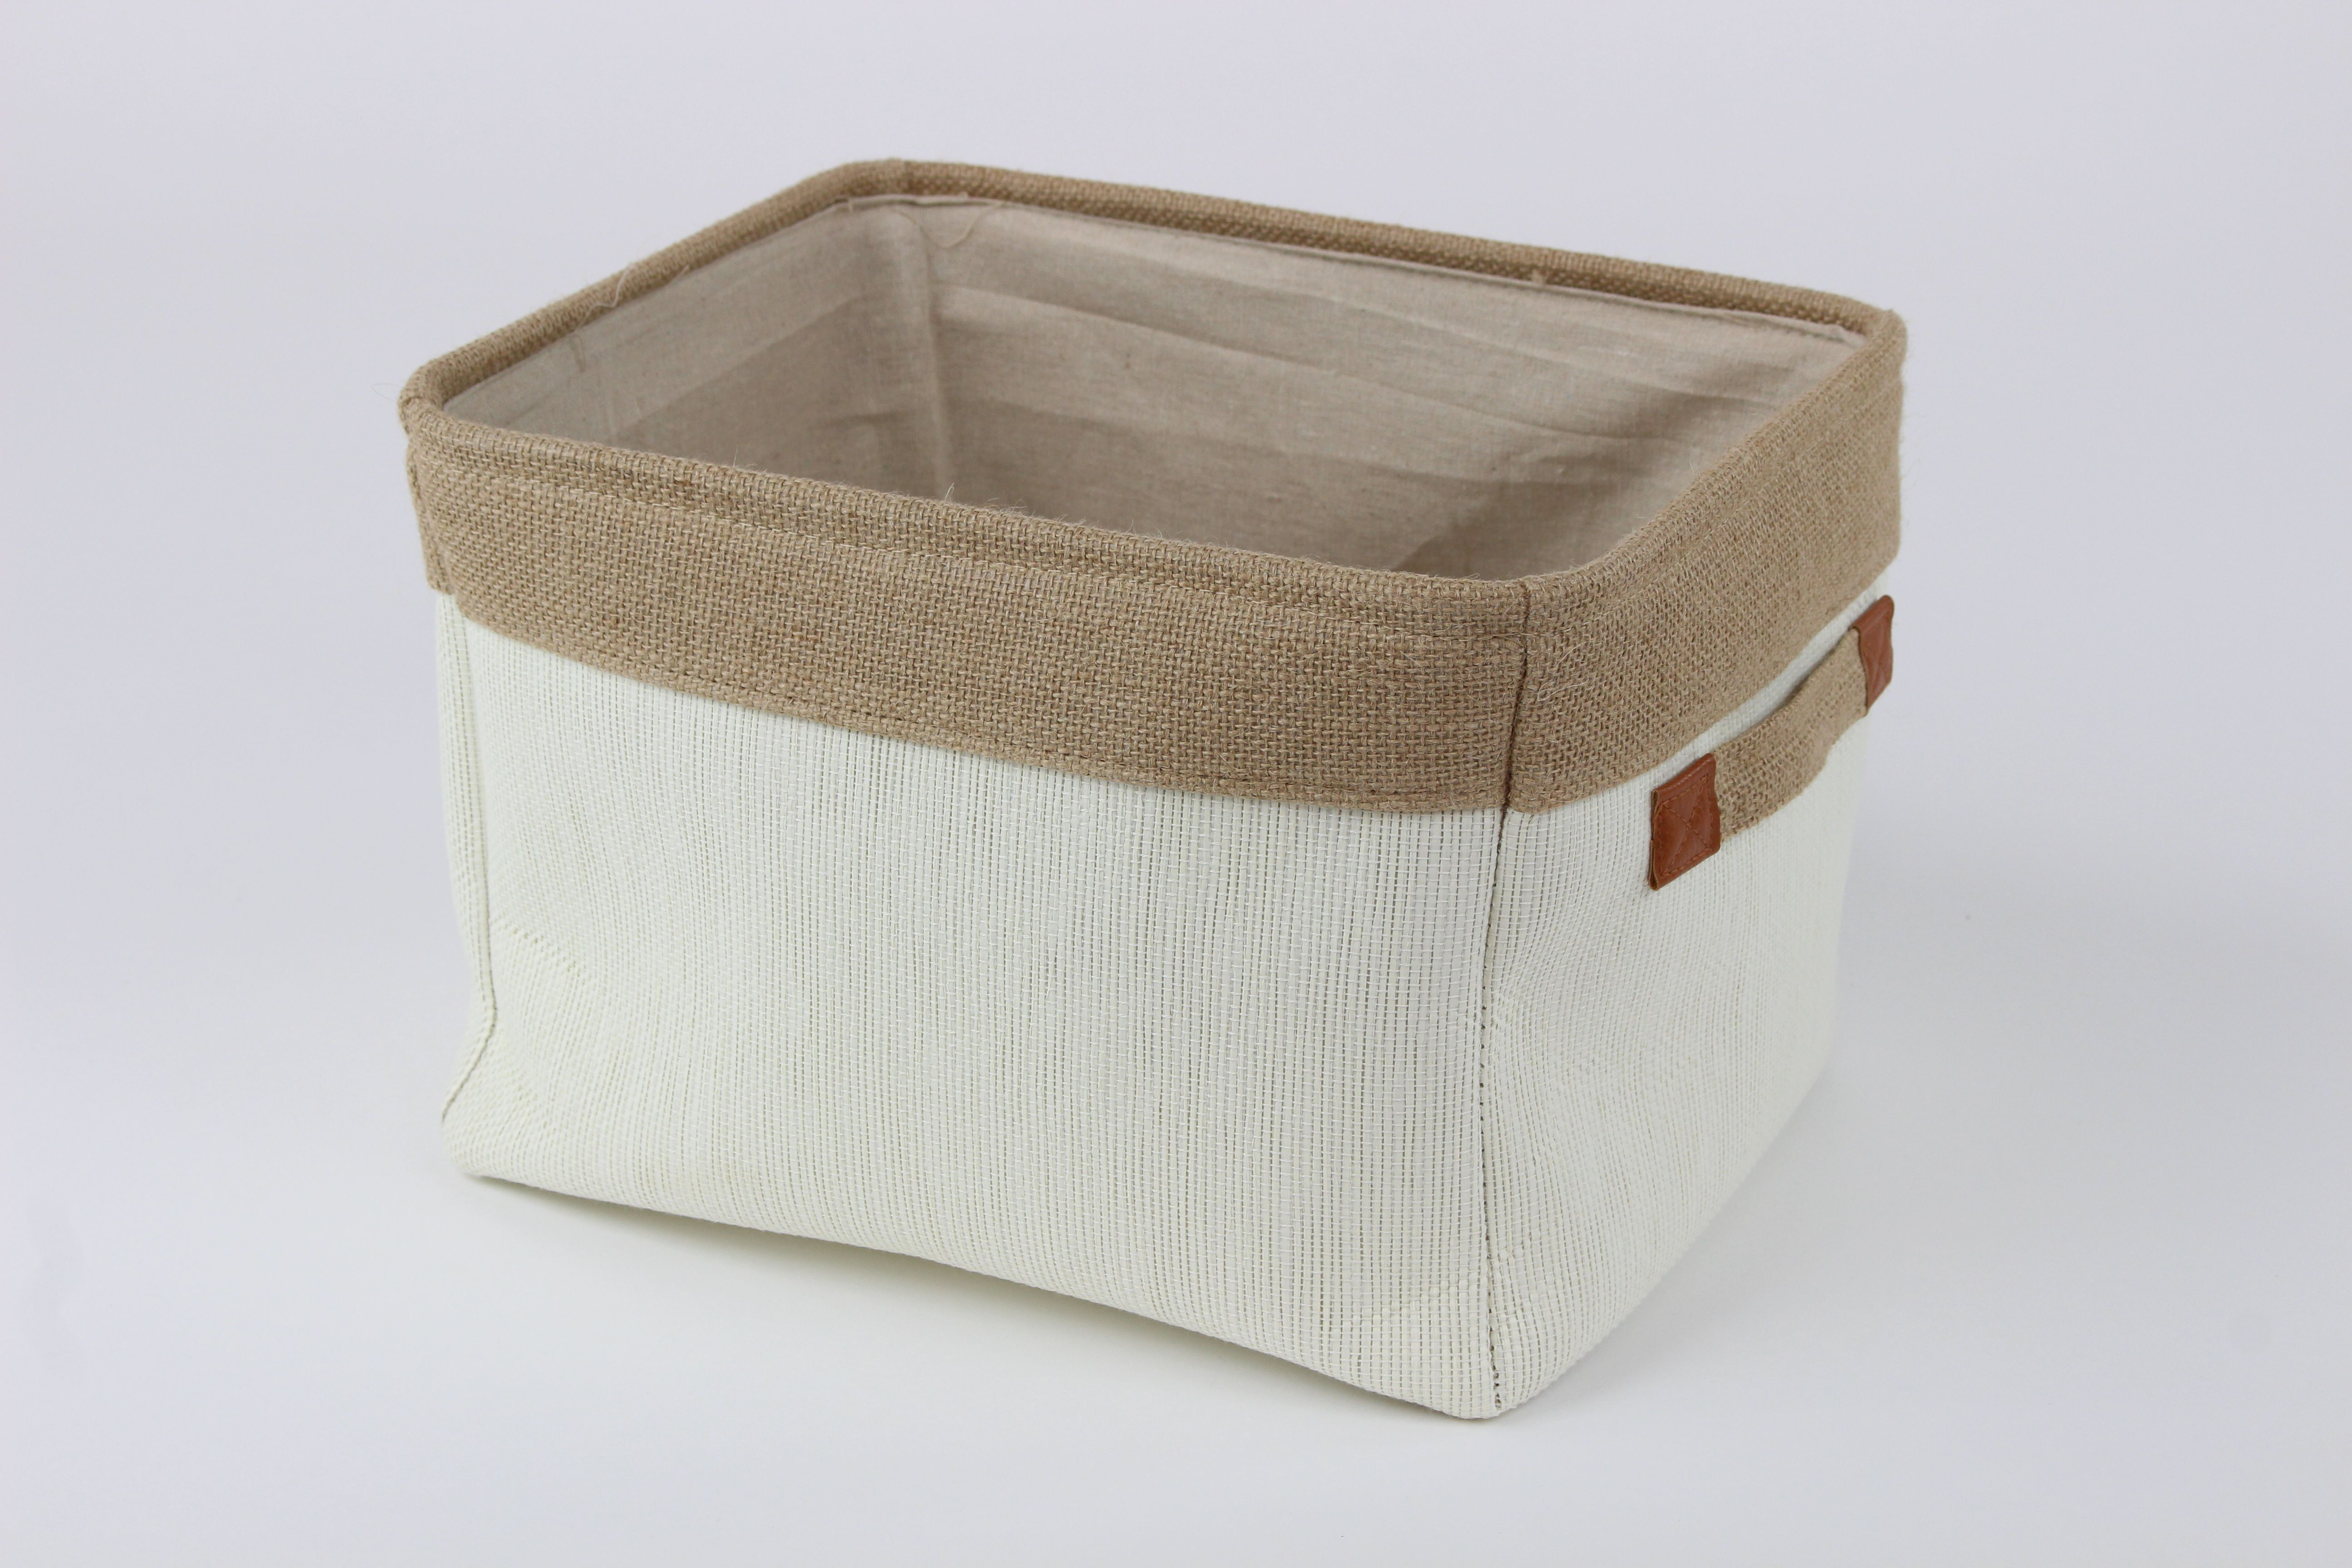 Introducing Our Soft Cream Canvas Storage Basket This Basket Is Complete With A Rustic Feel And Handles Canvas Storage Storage Baskets Wicker Baskets Storage